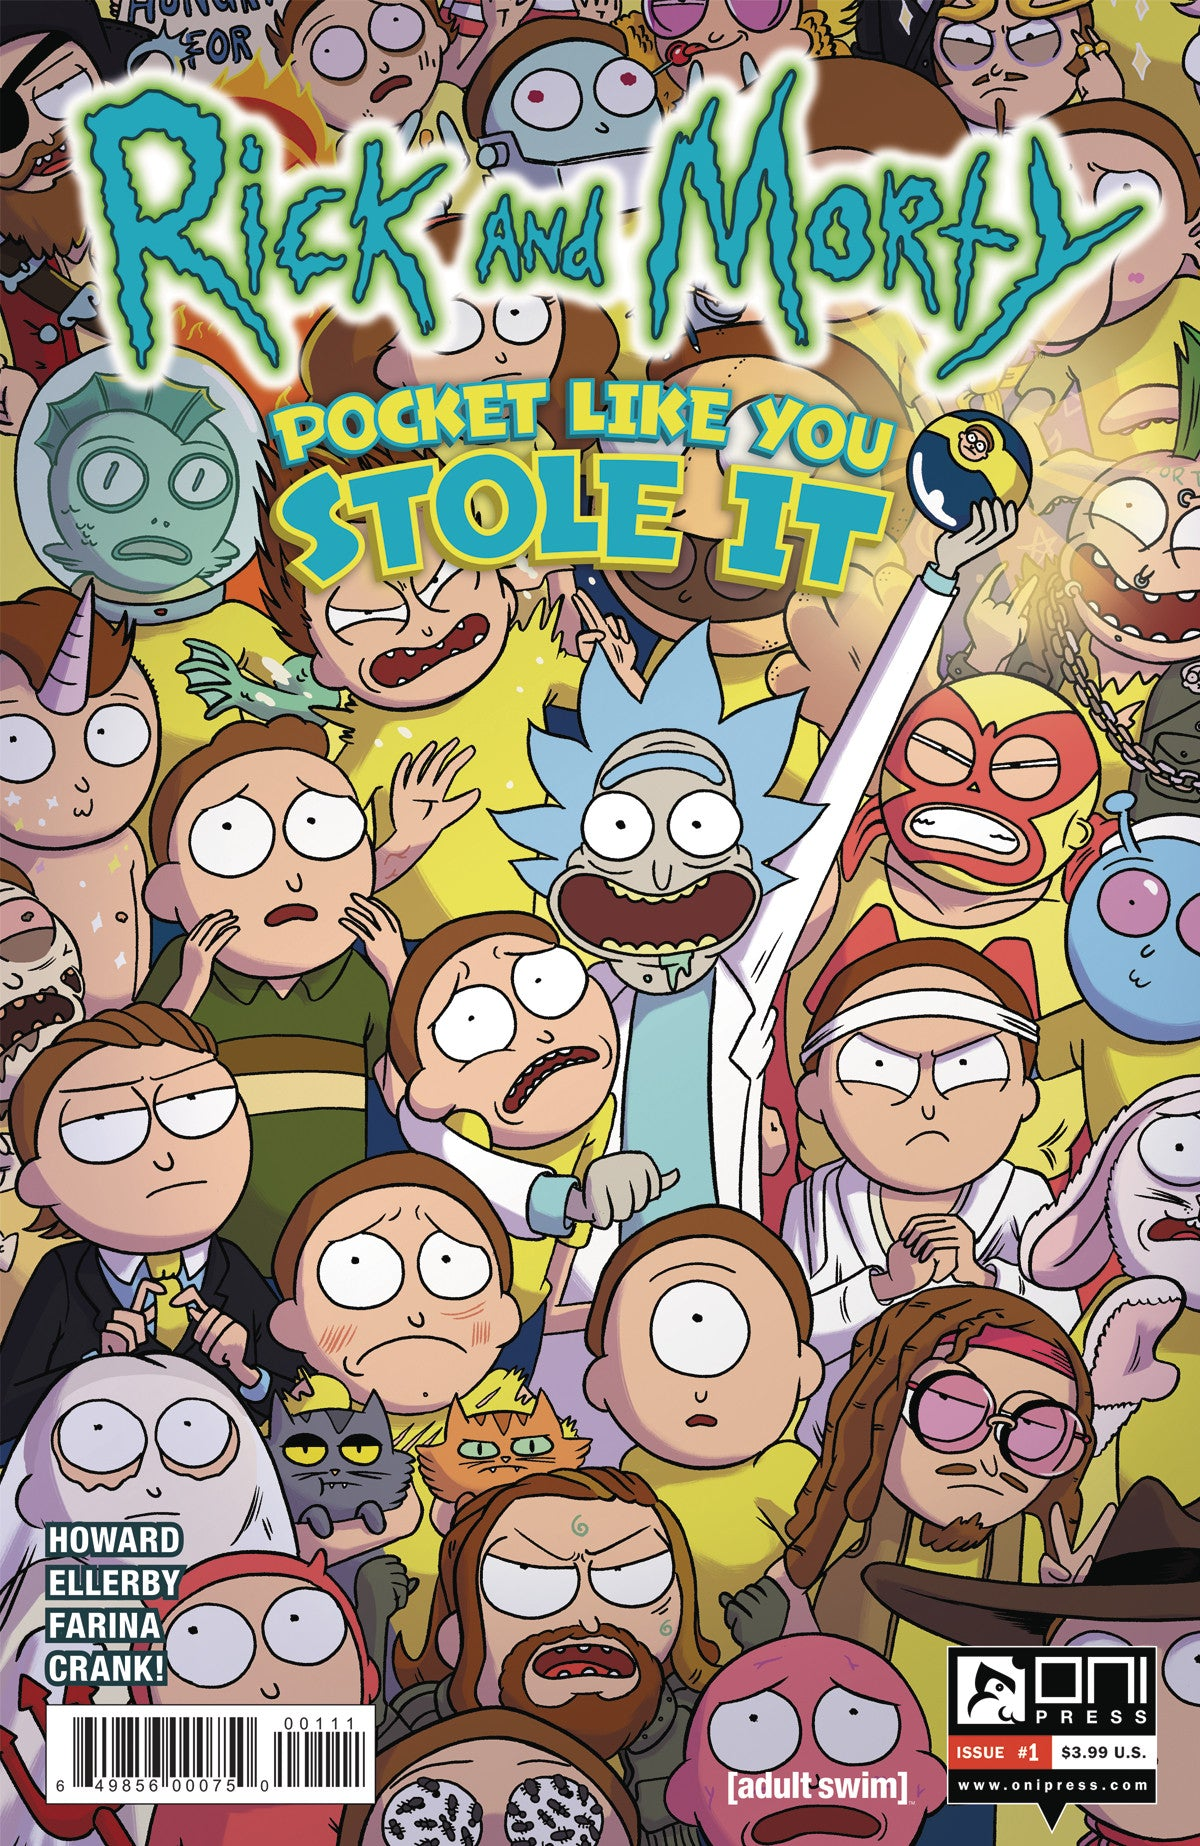 RICK & MORTY POCKET LIKE YOU STOLE IT #1